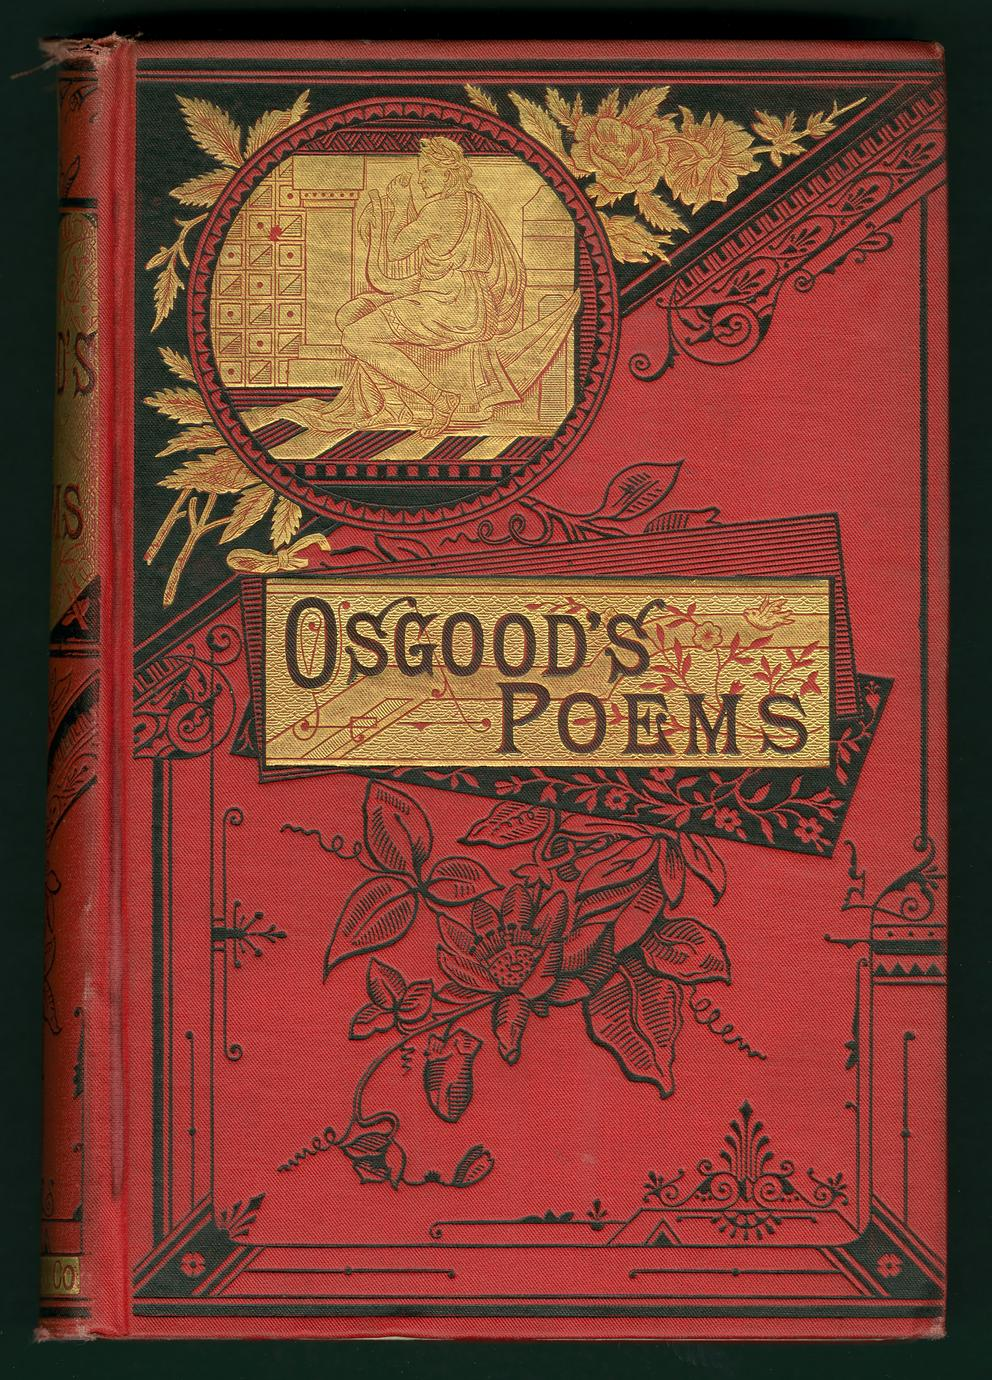 Osgood's poetical works (1 of 3)